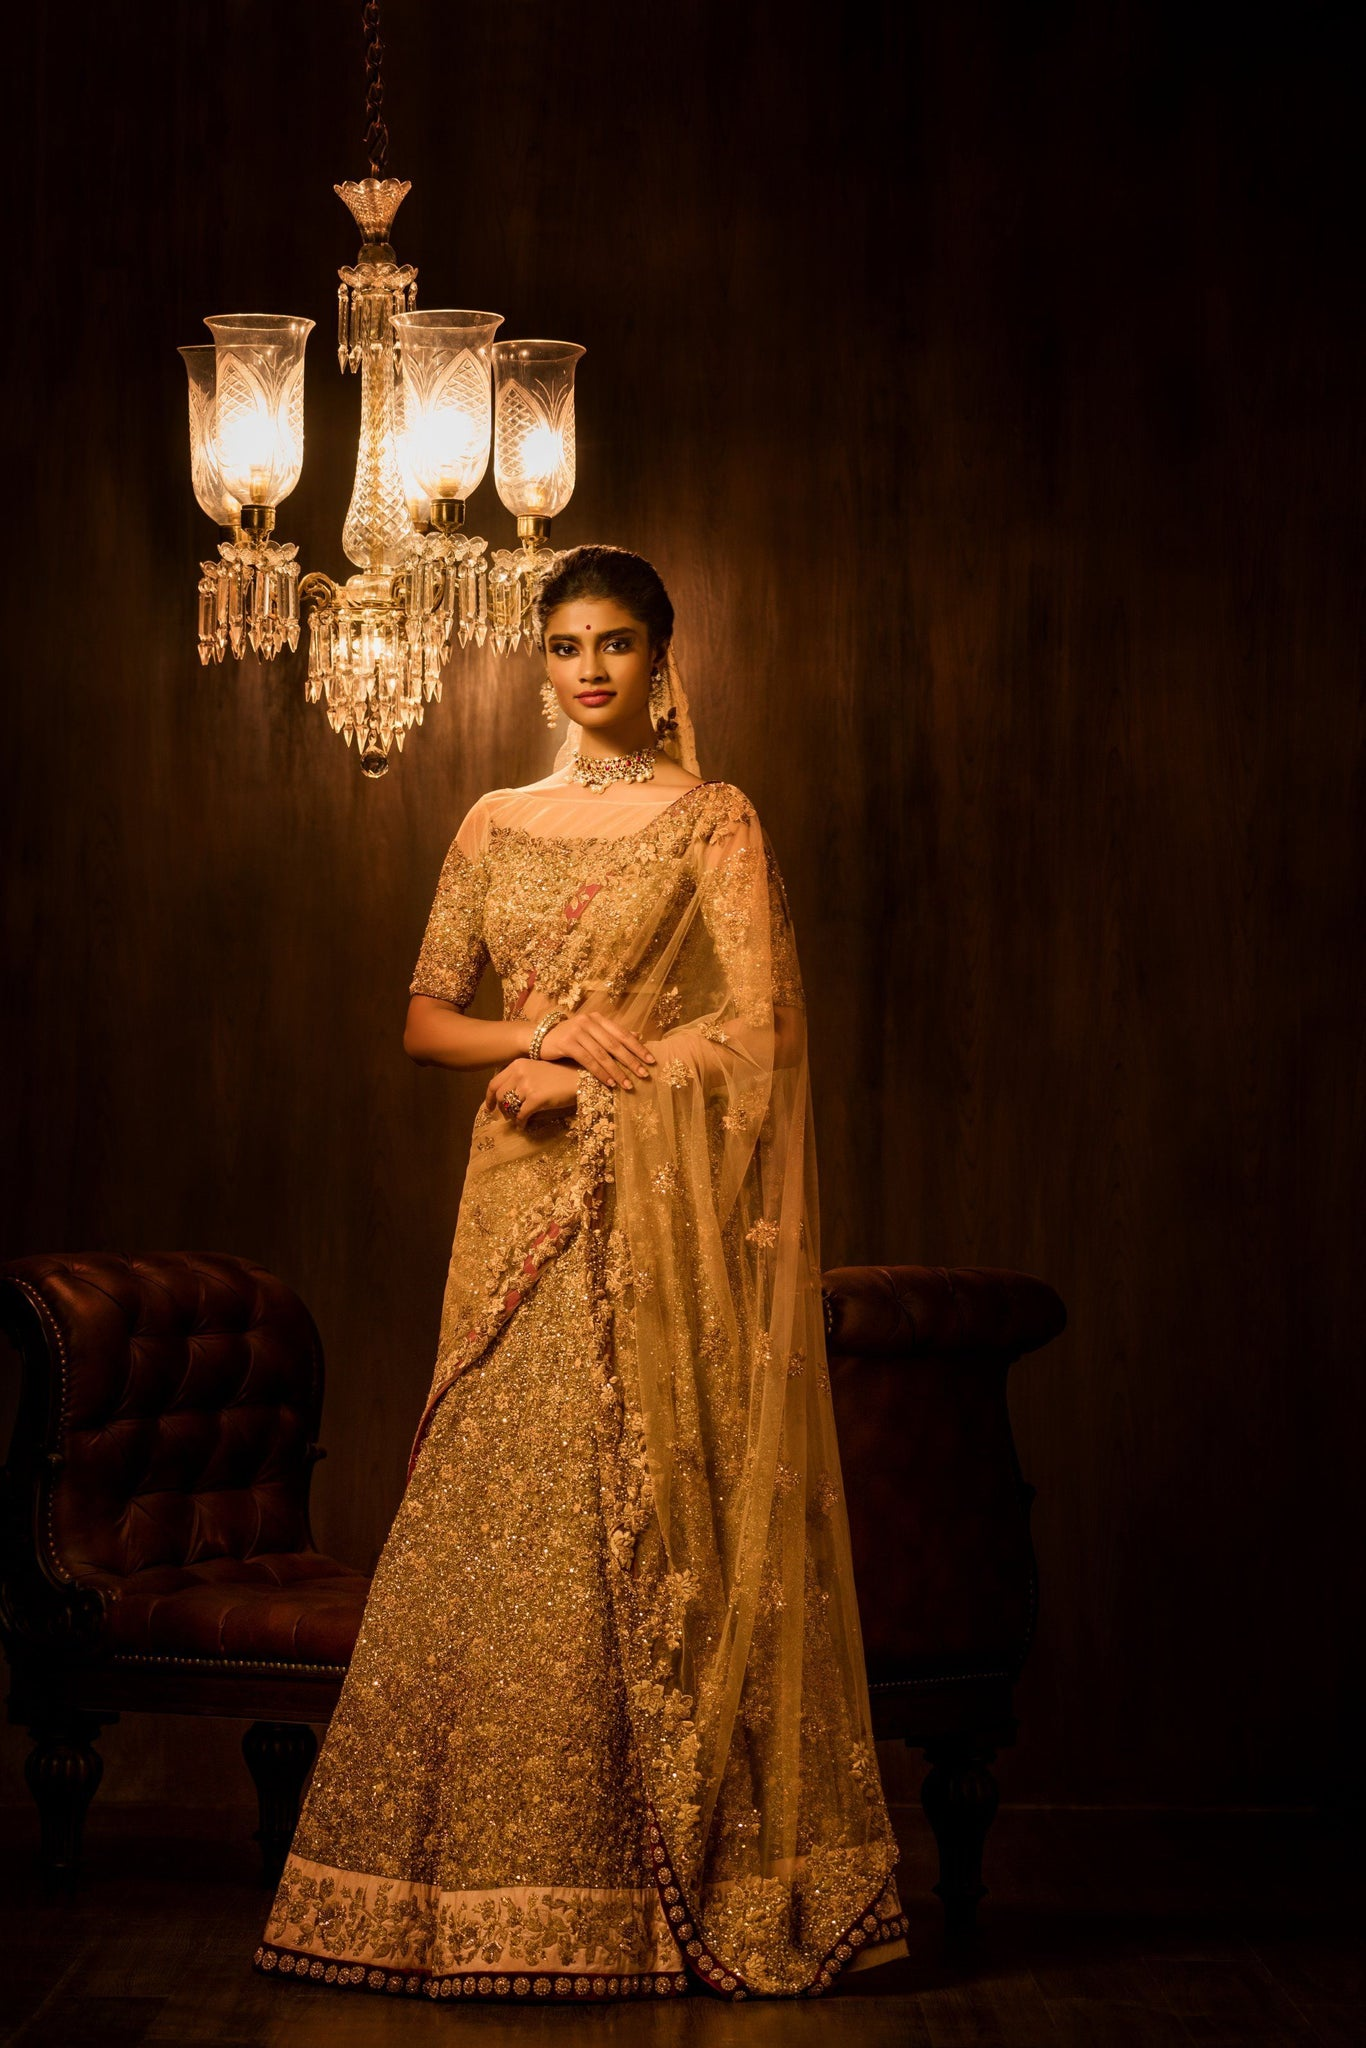 A Golden Bridal Embroidered Lehenga Choli For Wedding